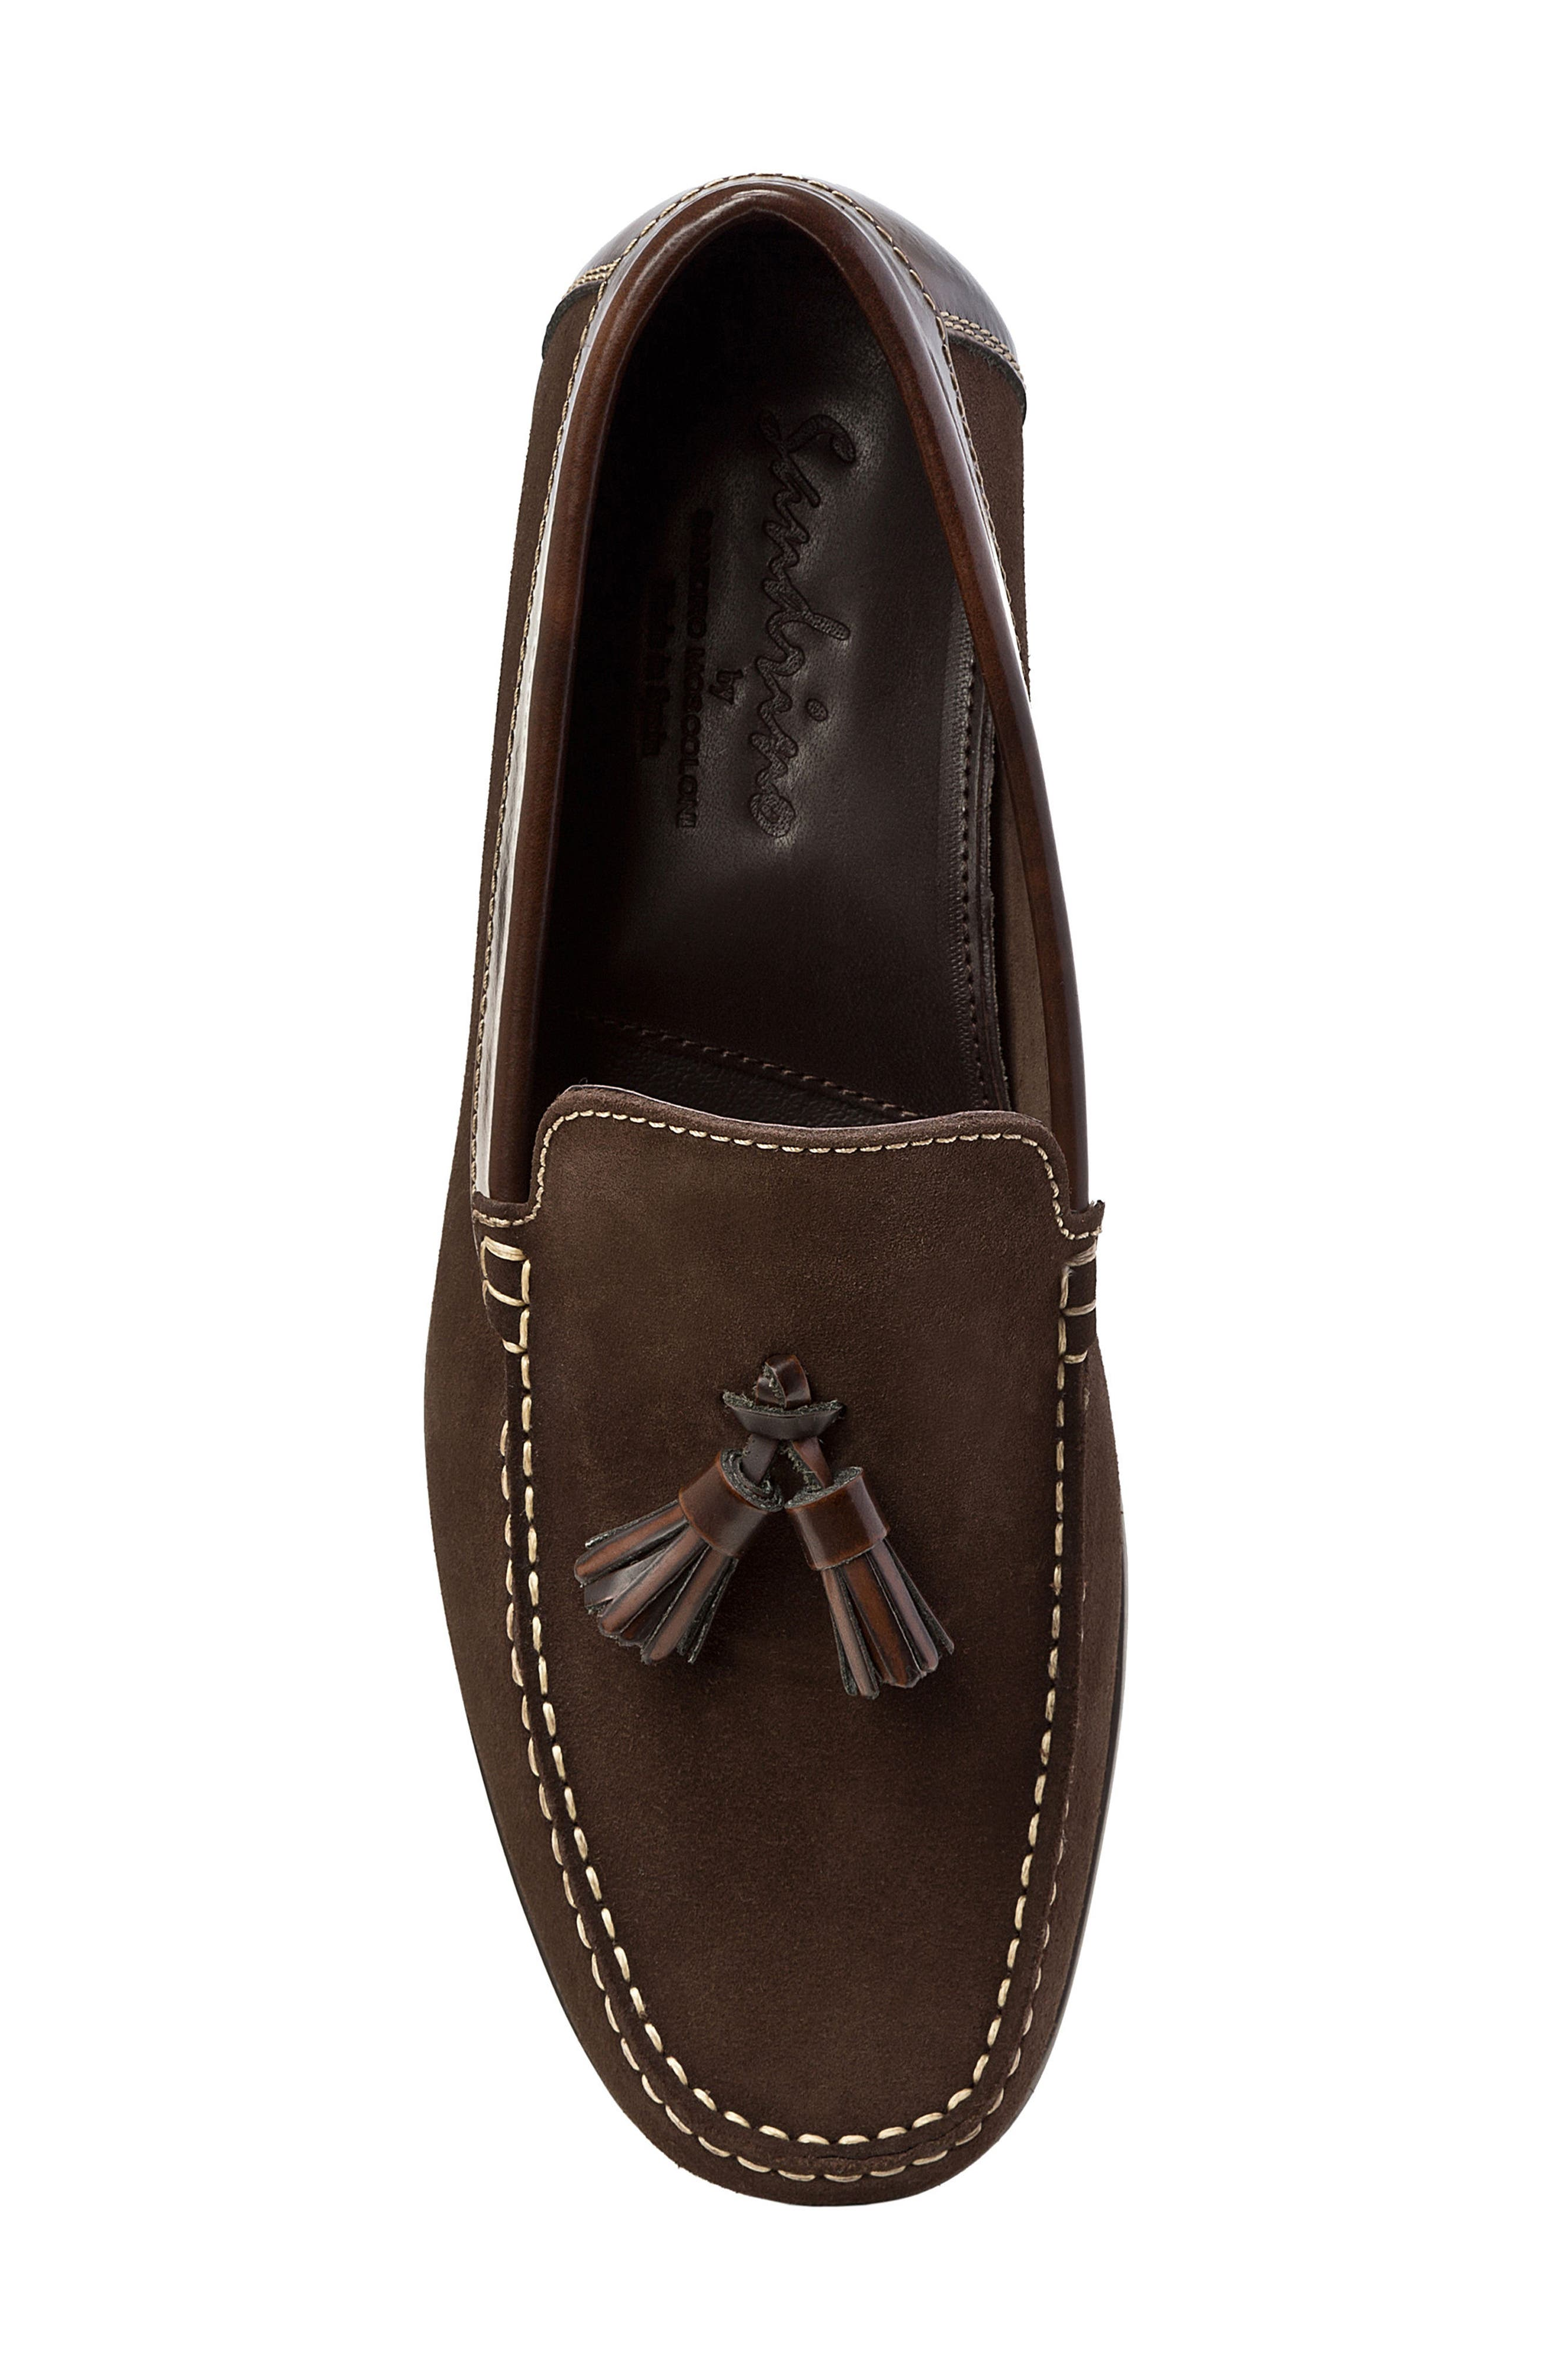 SANDRO MOSCOLONI,                             Hojas Tassel Loafer,                             Alternate thumbnail 5, color,                             BROWN LEATHER